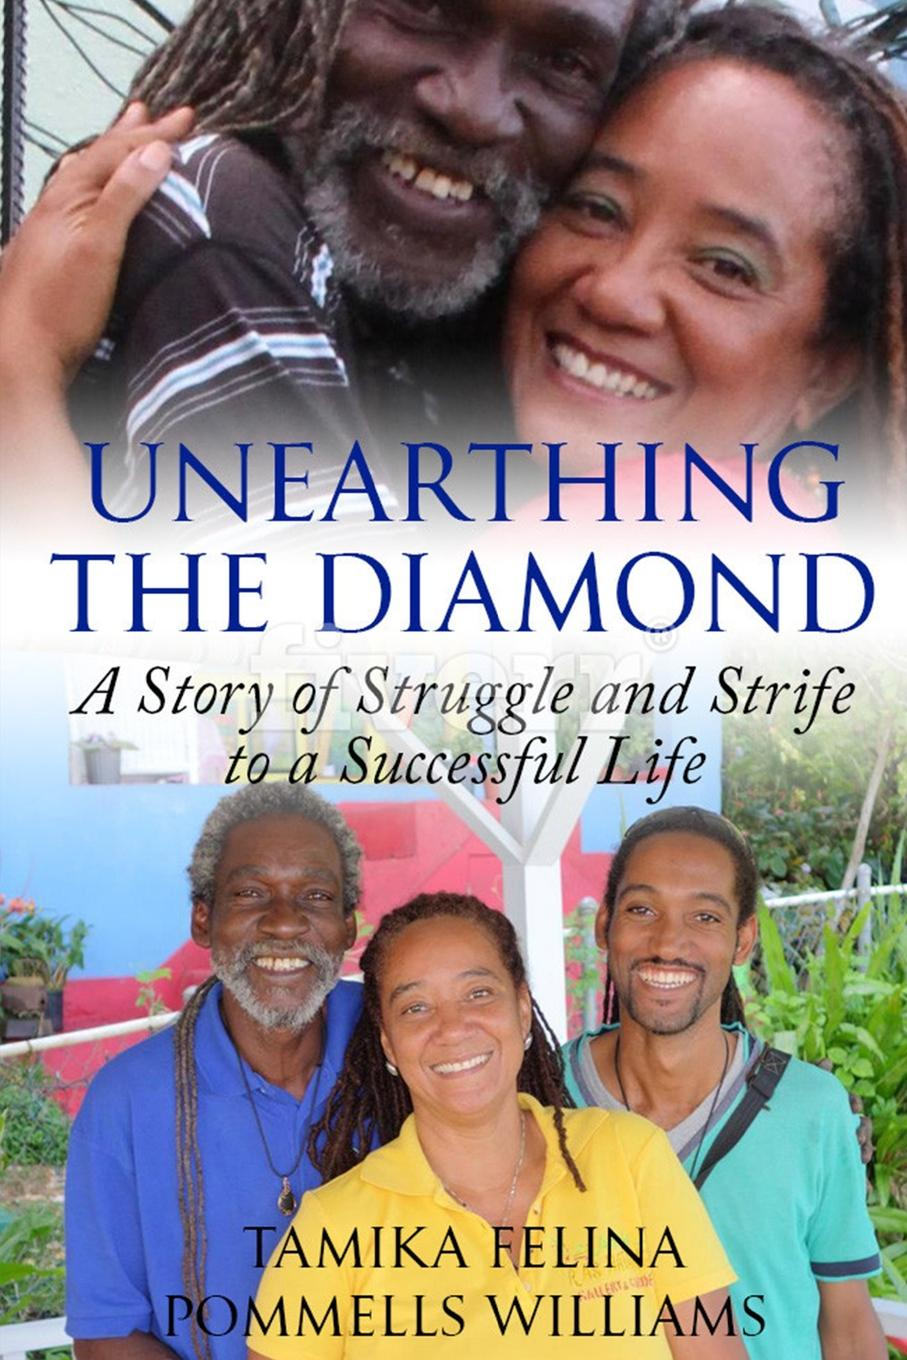 Tamika Felina Pommells Williams Unearthing the Diamond. A Story of Struggle and Strife to a Successful Life sarah godfrey life works when a story of piecing happiness together for a successful life